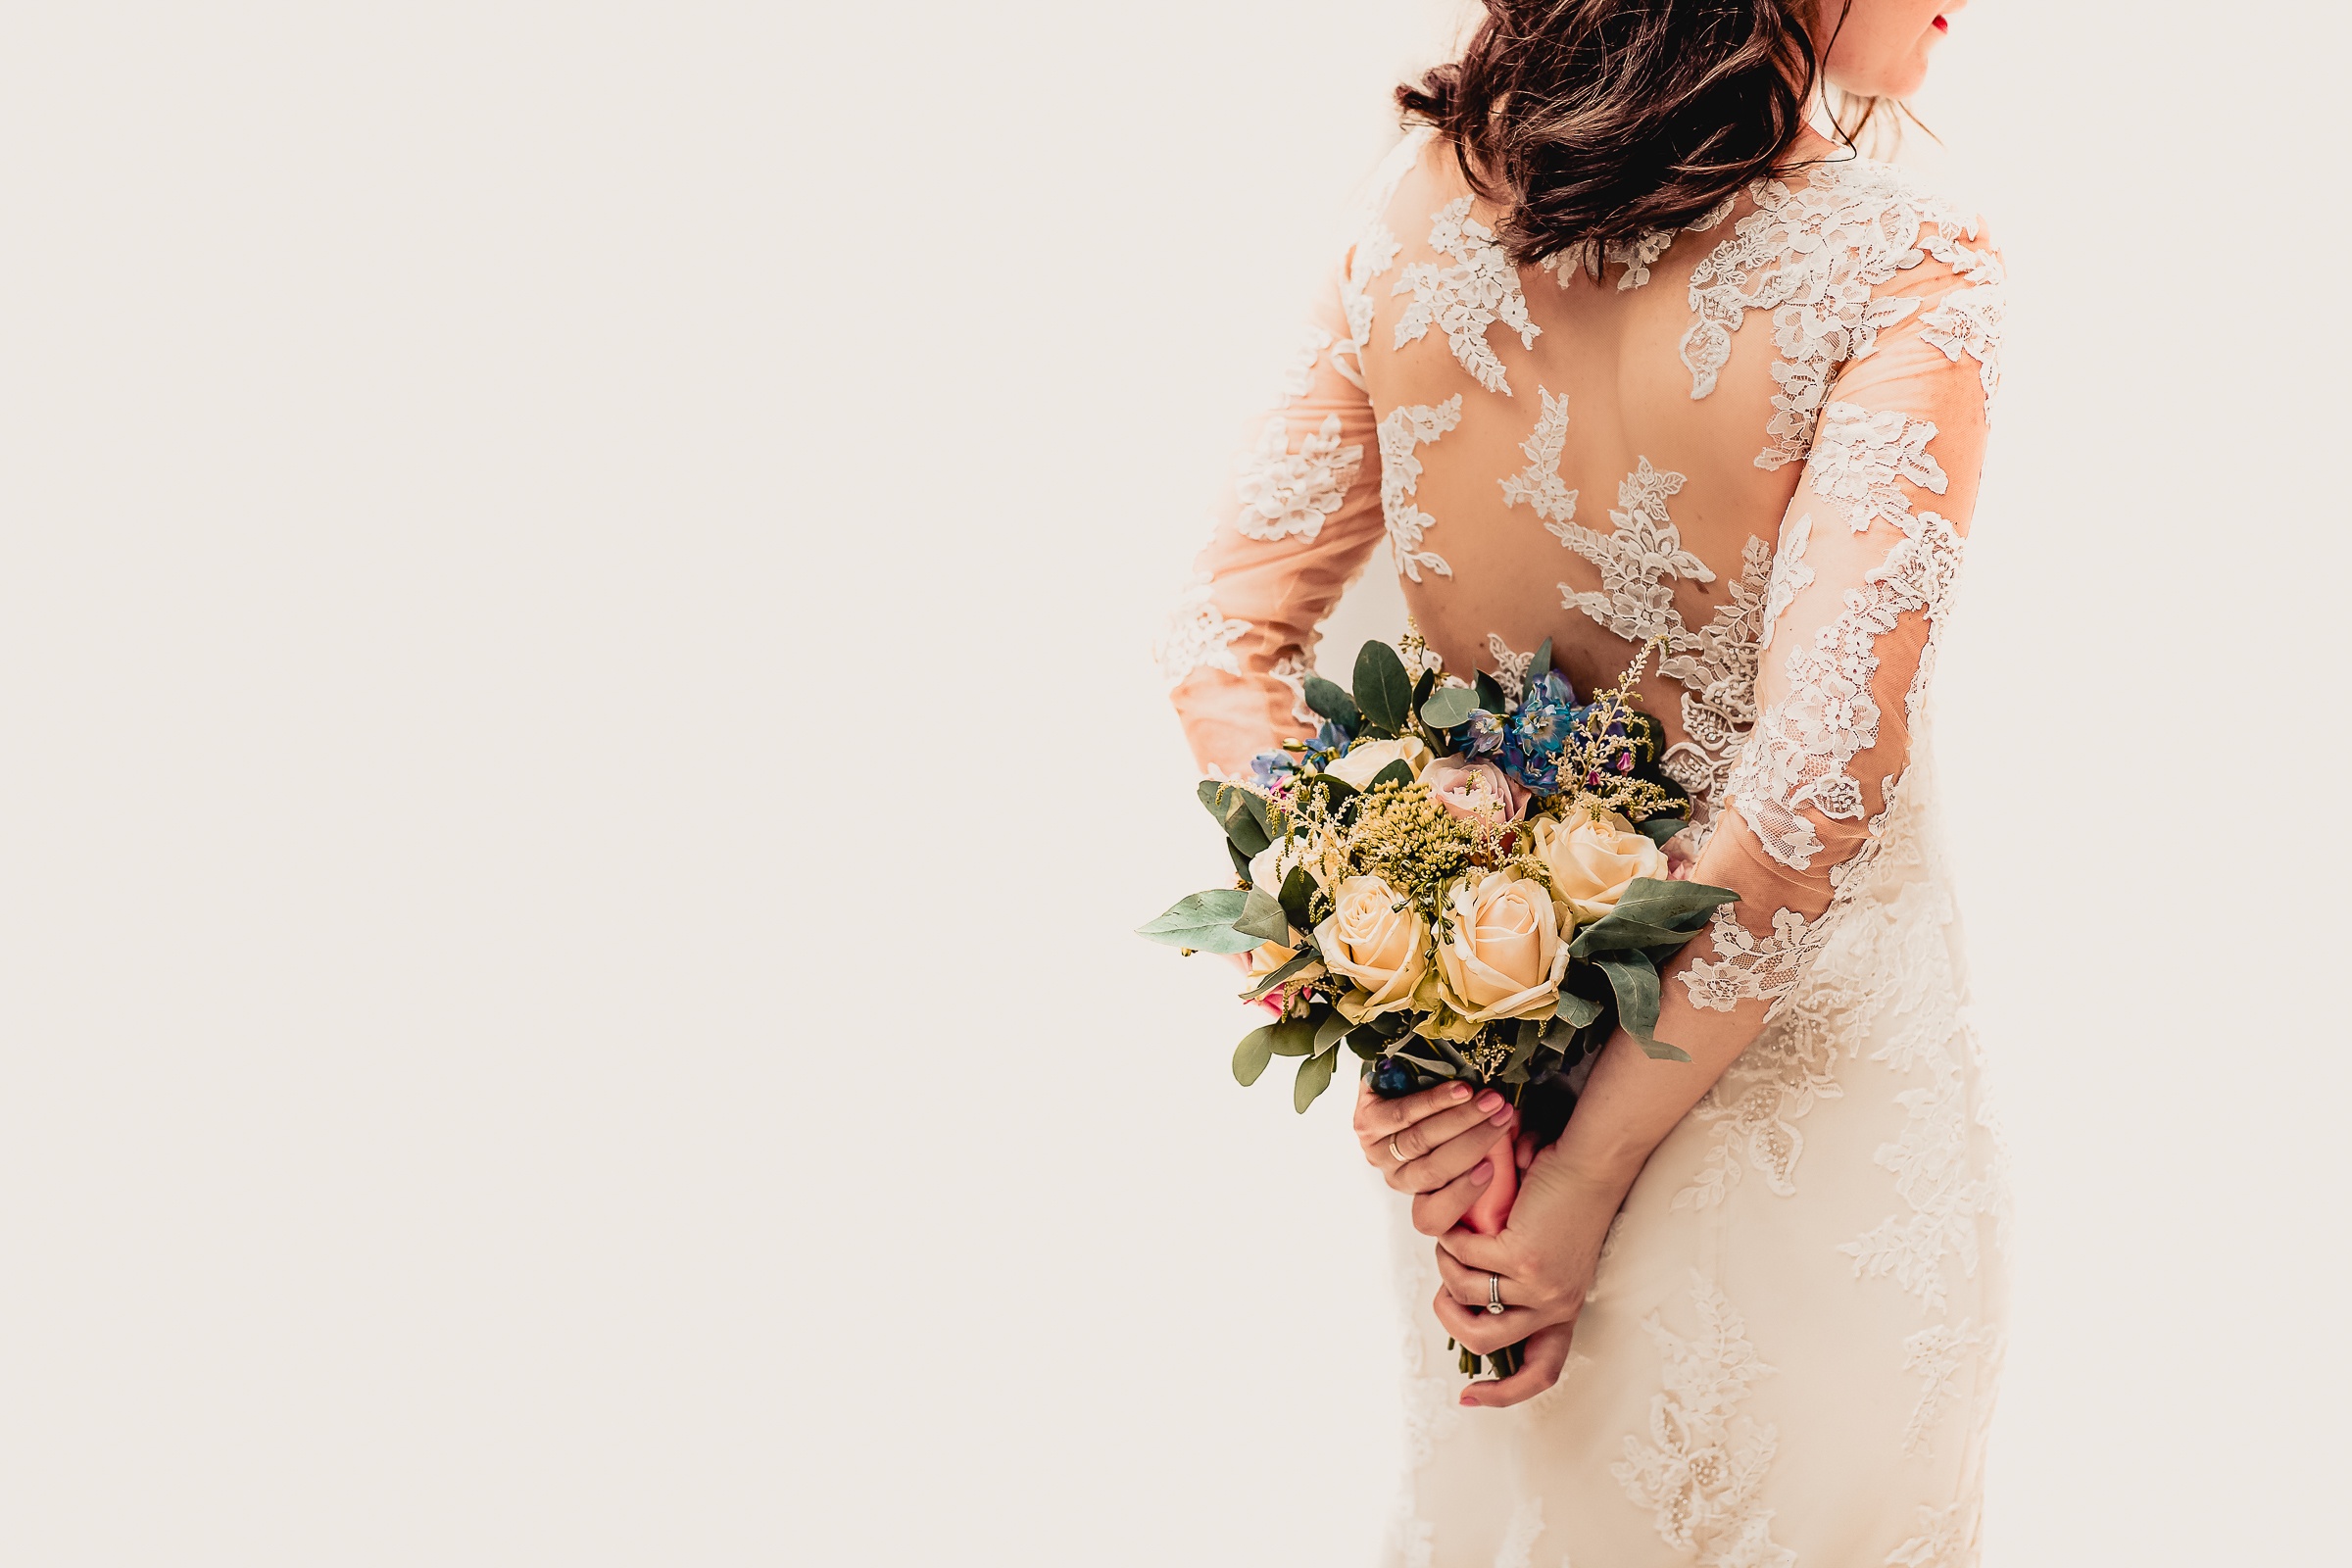 Back of bridal gown with bouquet - photo by Eppel Photography